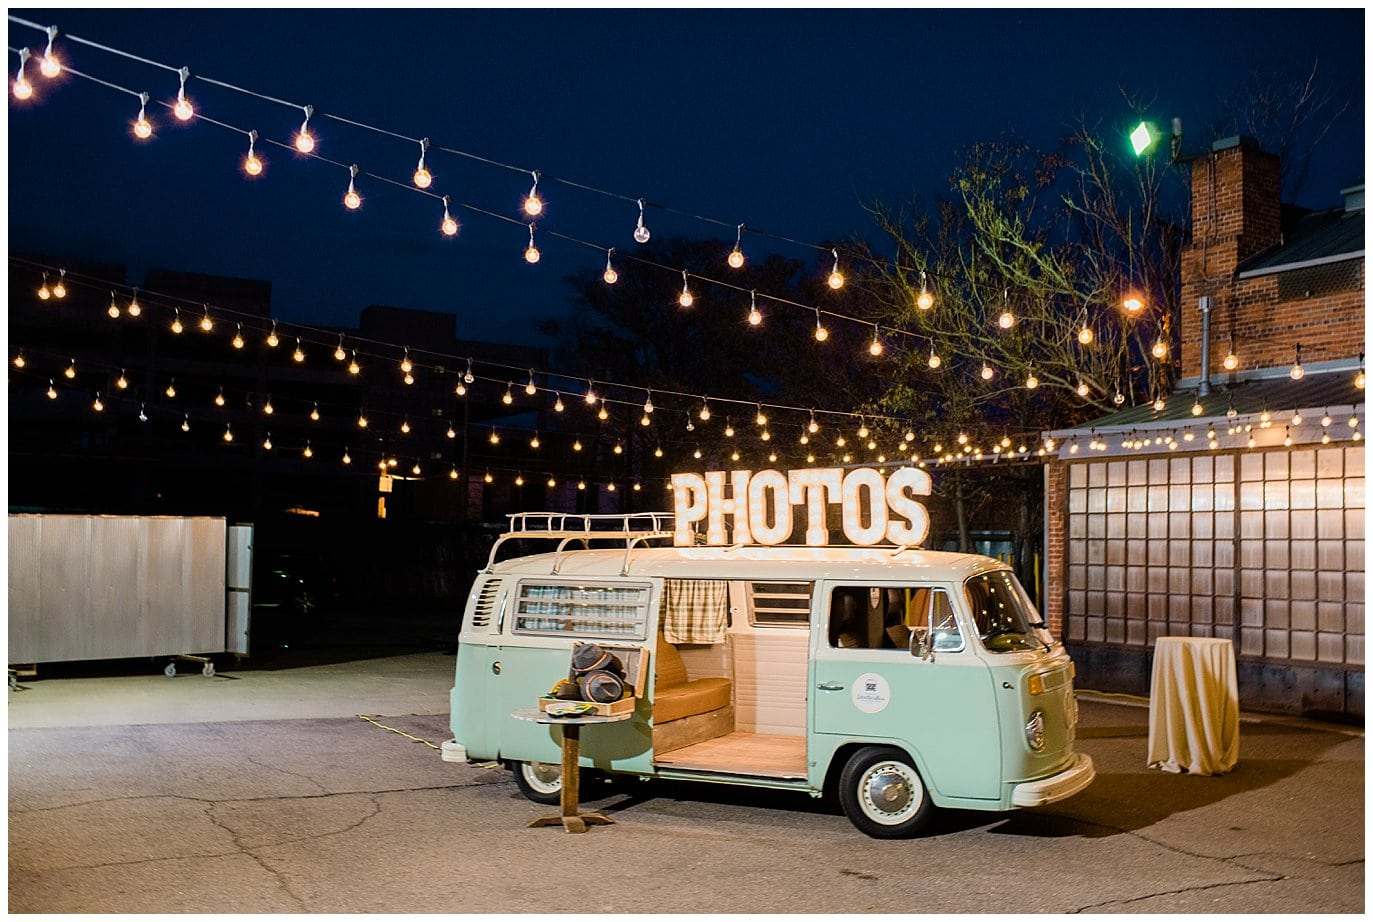 blanc Denver wedding photographer captures shutter bus at twilight by Jennie Crate